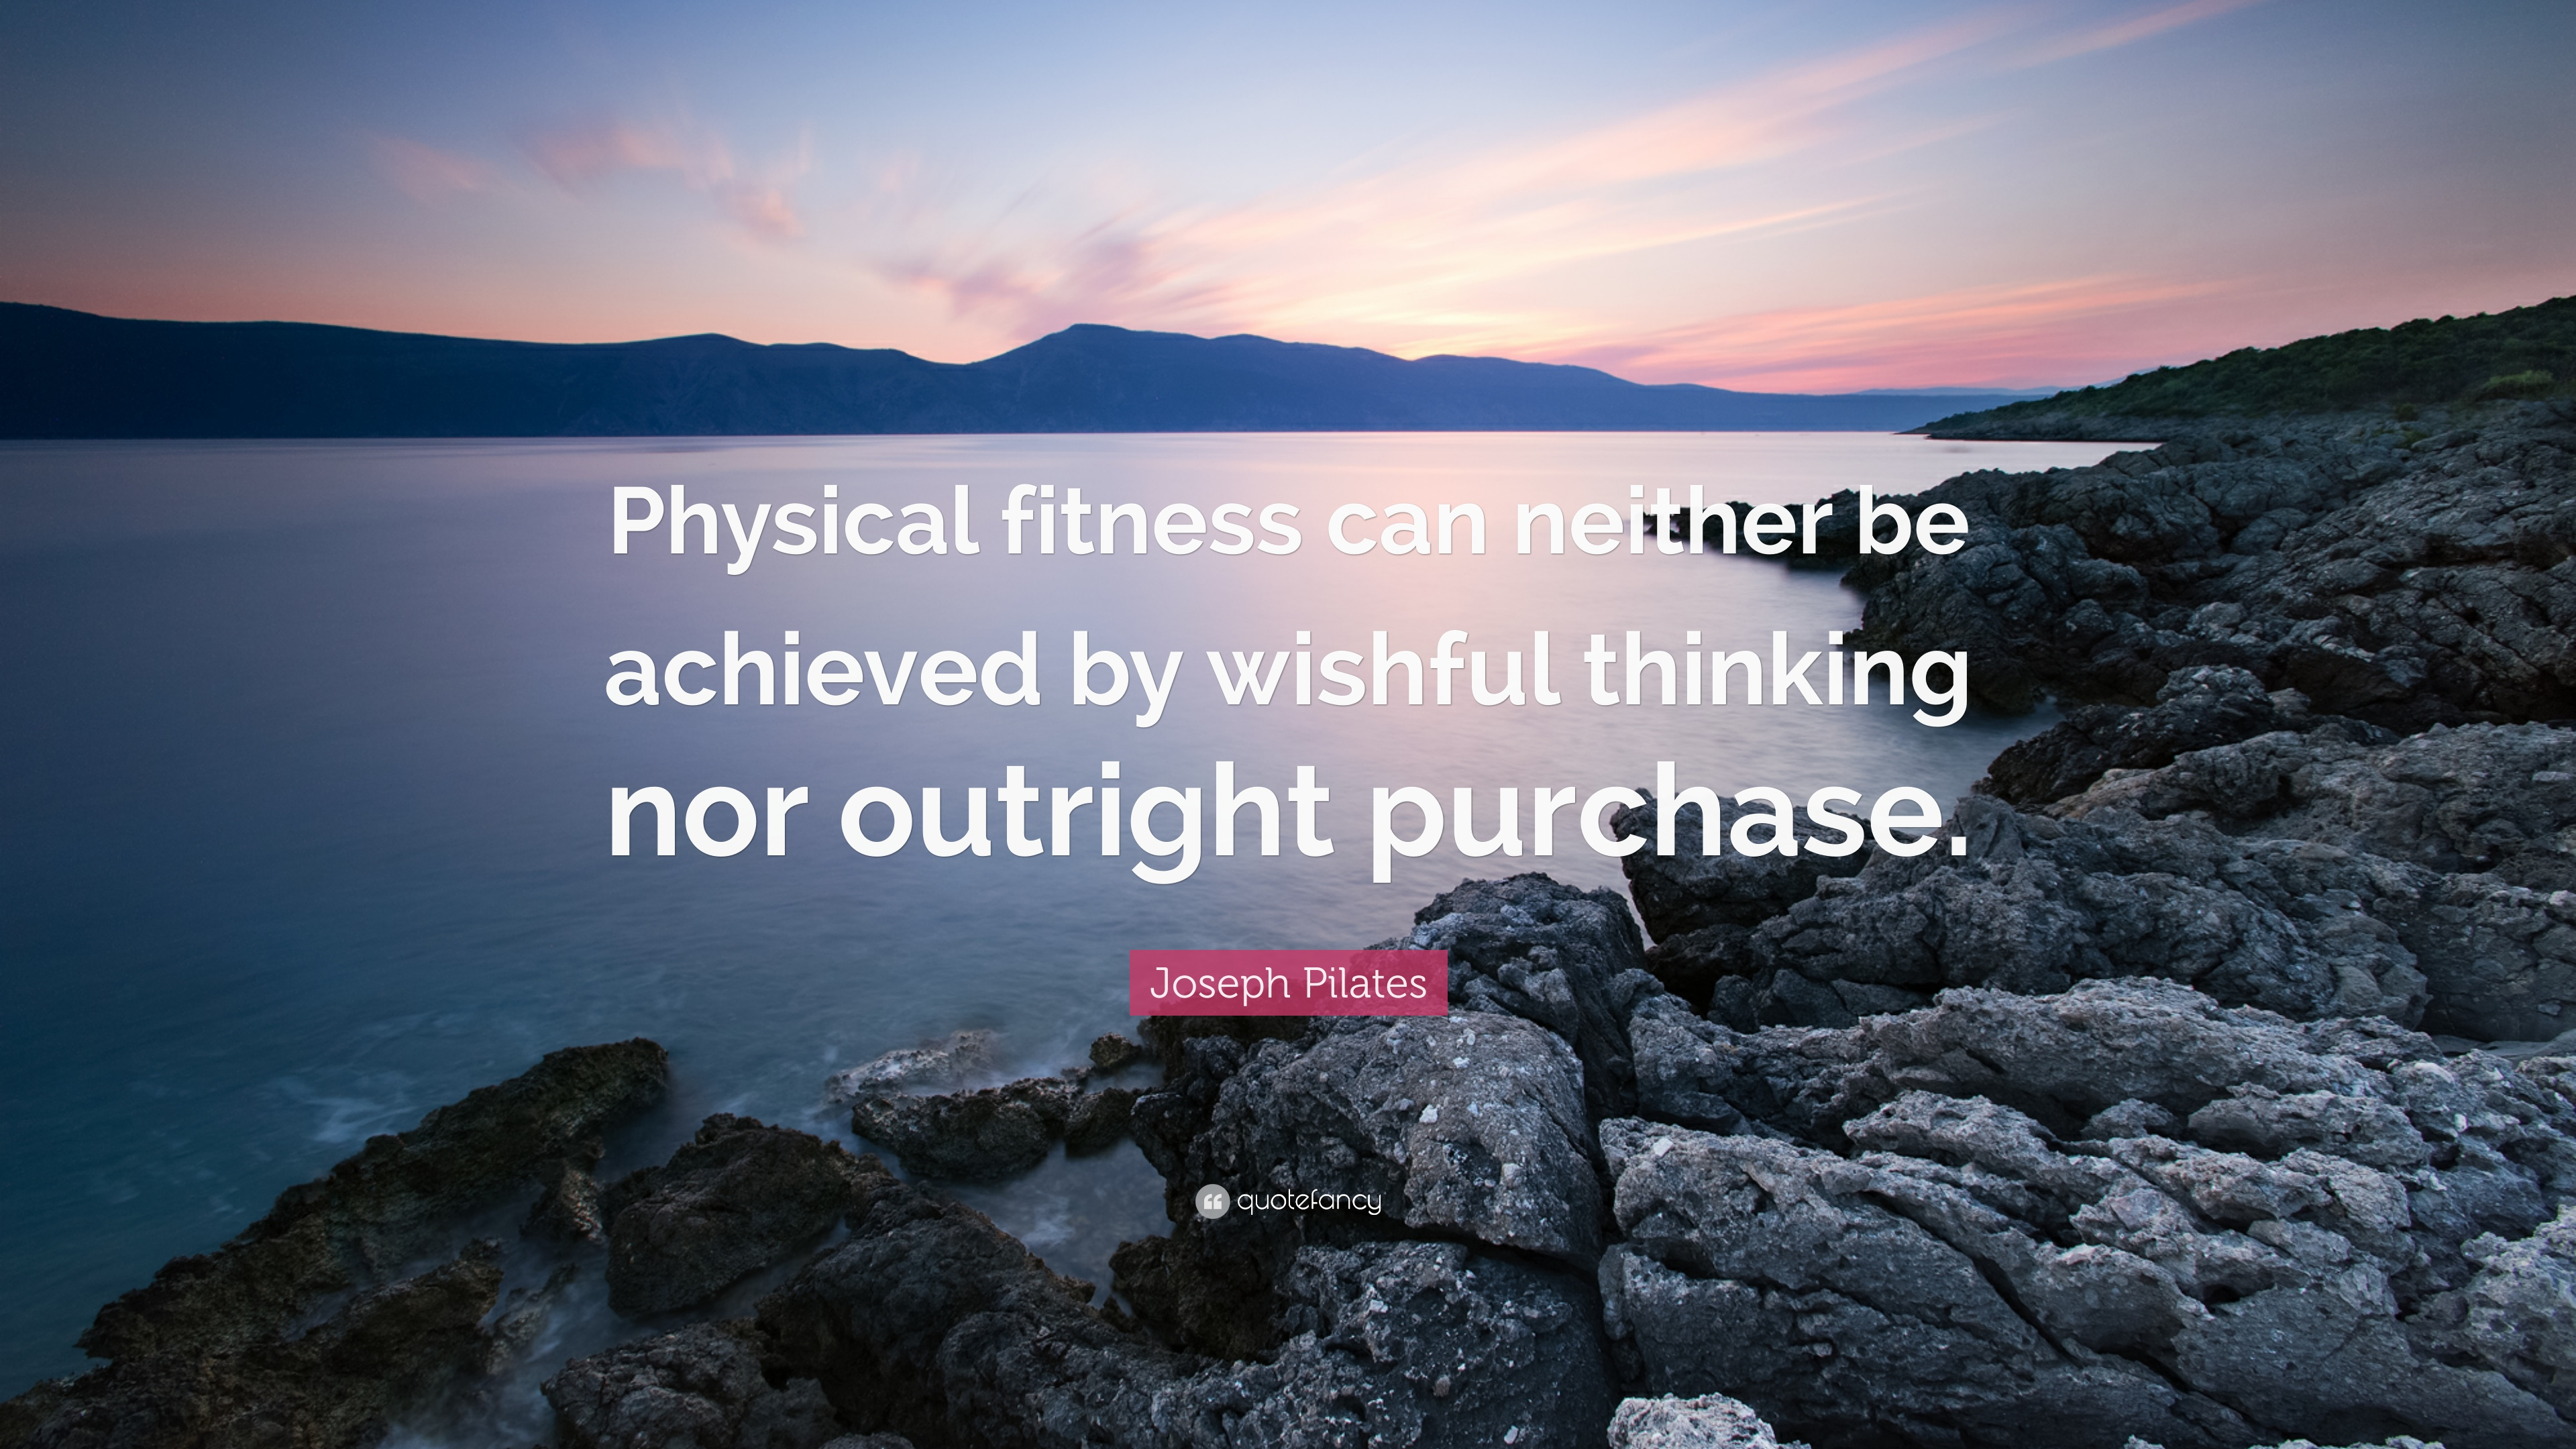 Joseph Pilates Quote Physical Fitness Can Neither Be Achieved By Wishful Thinking Nor Outright Purchase 9 Wallpapers Quotefancy